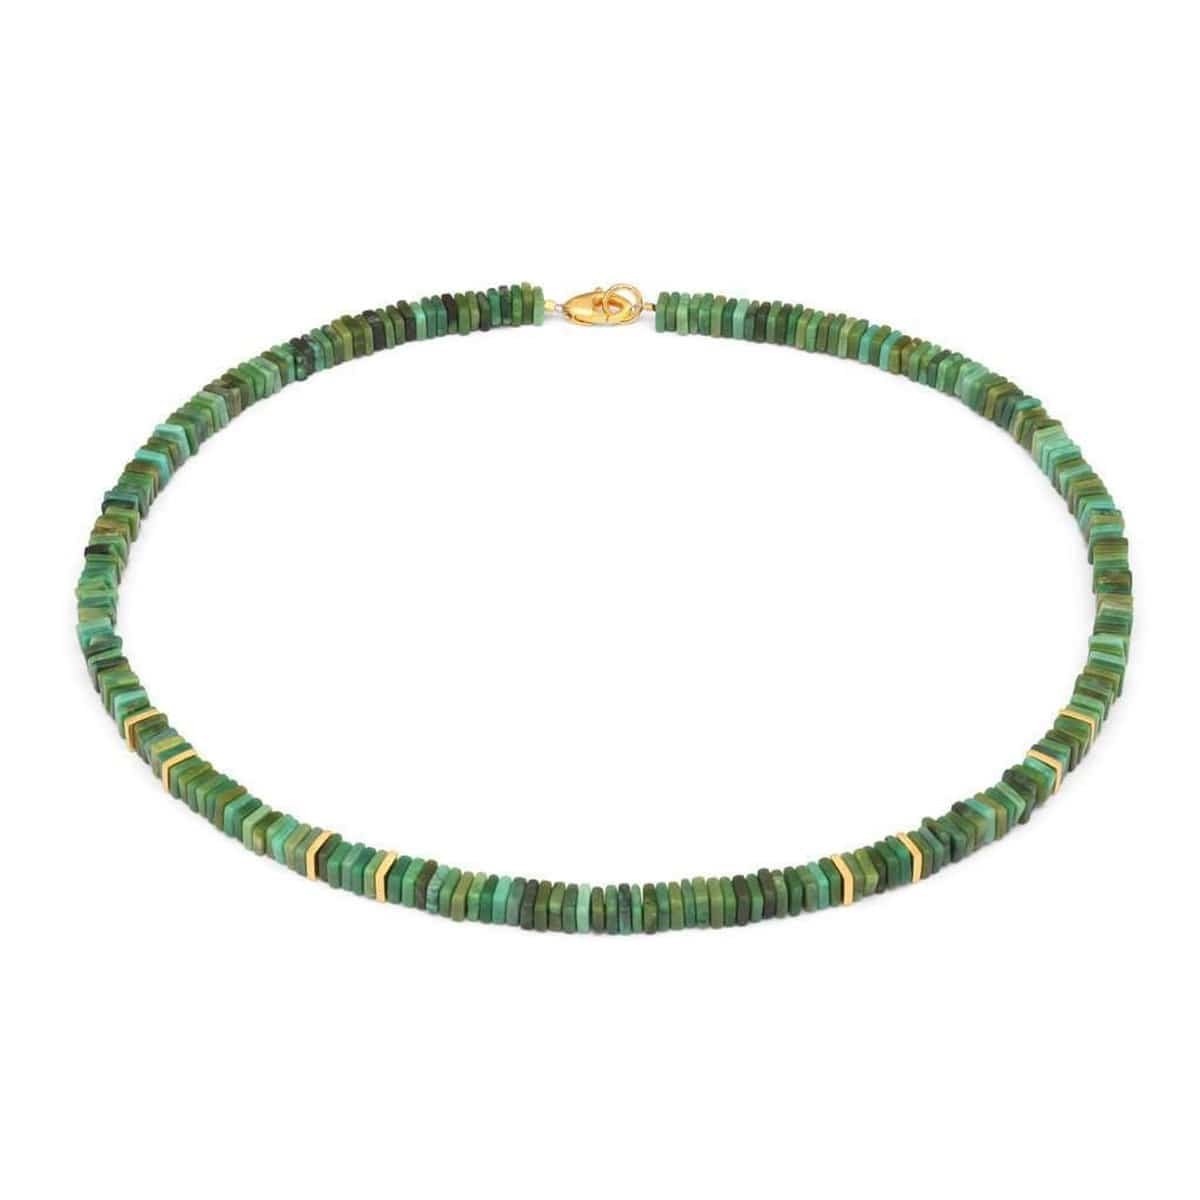 Platino Green Turquoise Necklace - 84420356-Bernd Wolf-Renee Taylor Gallery